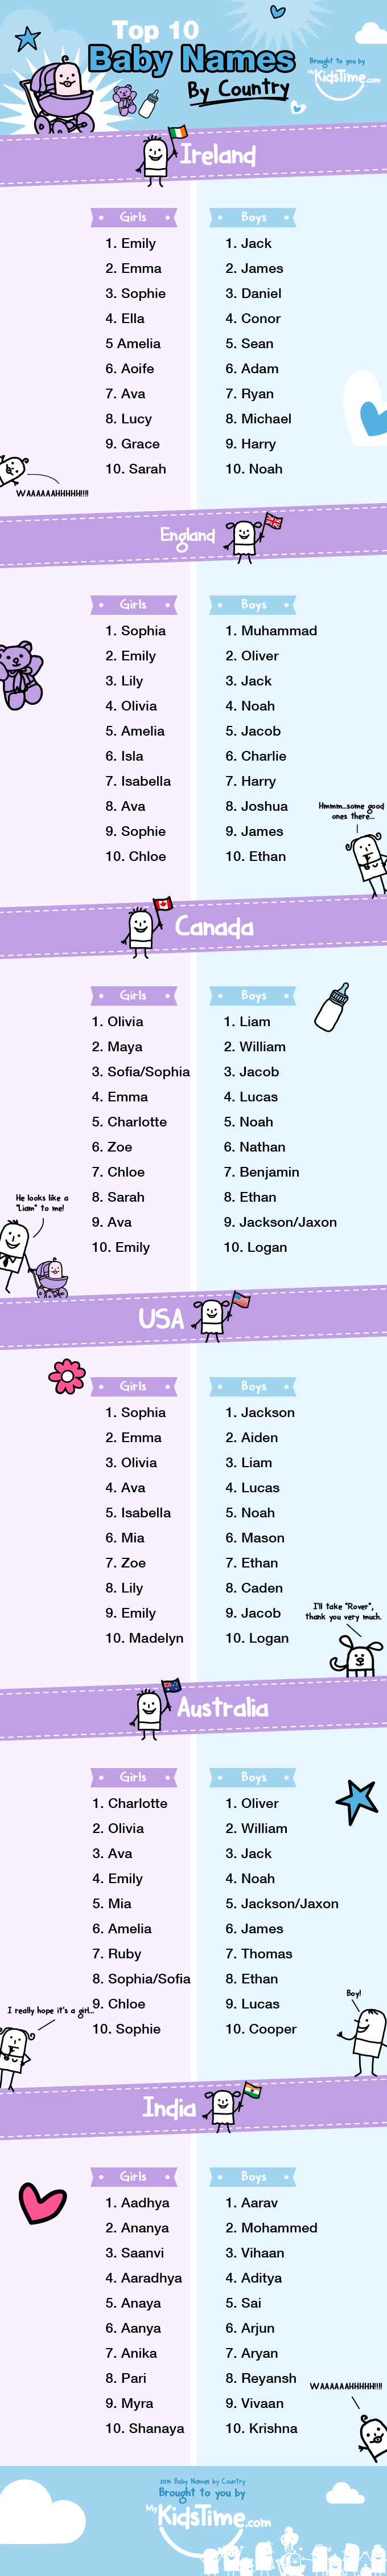 popular baby names